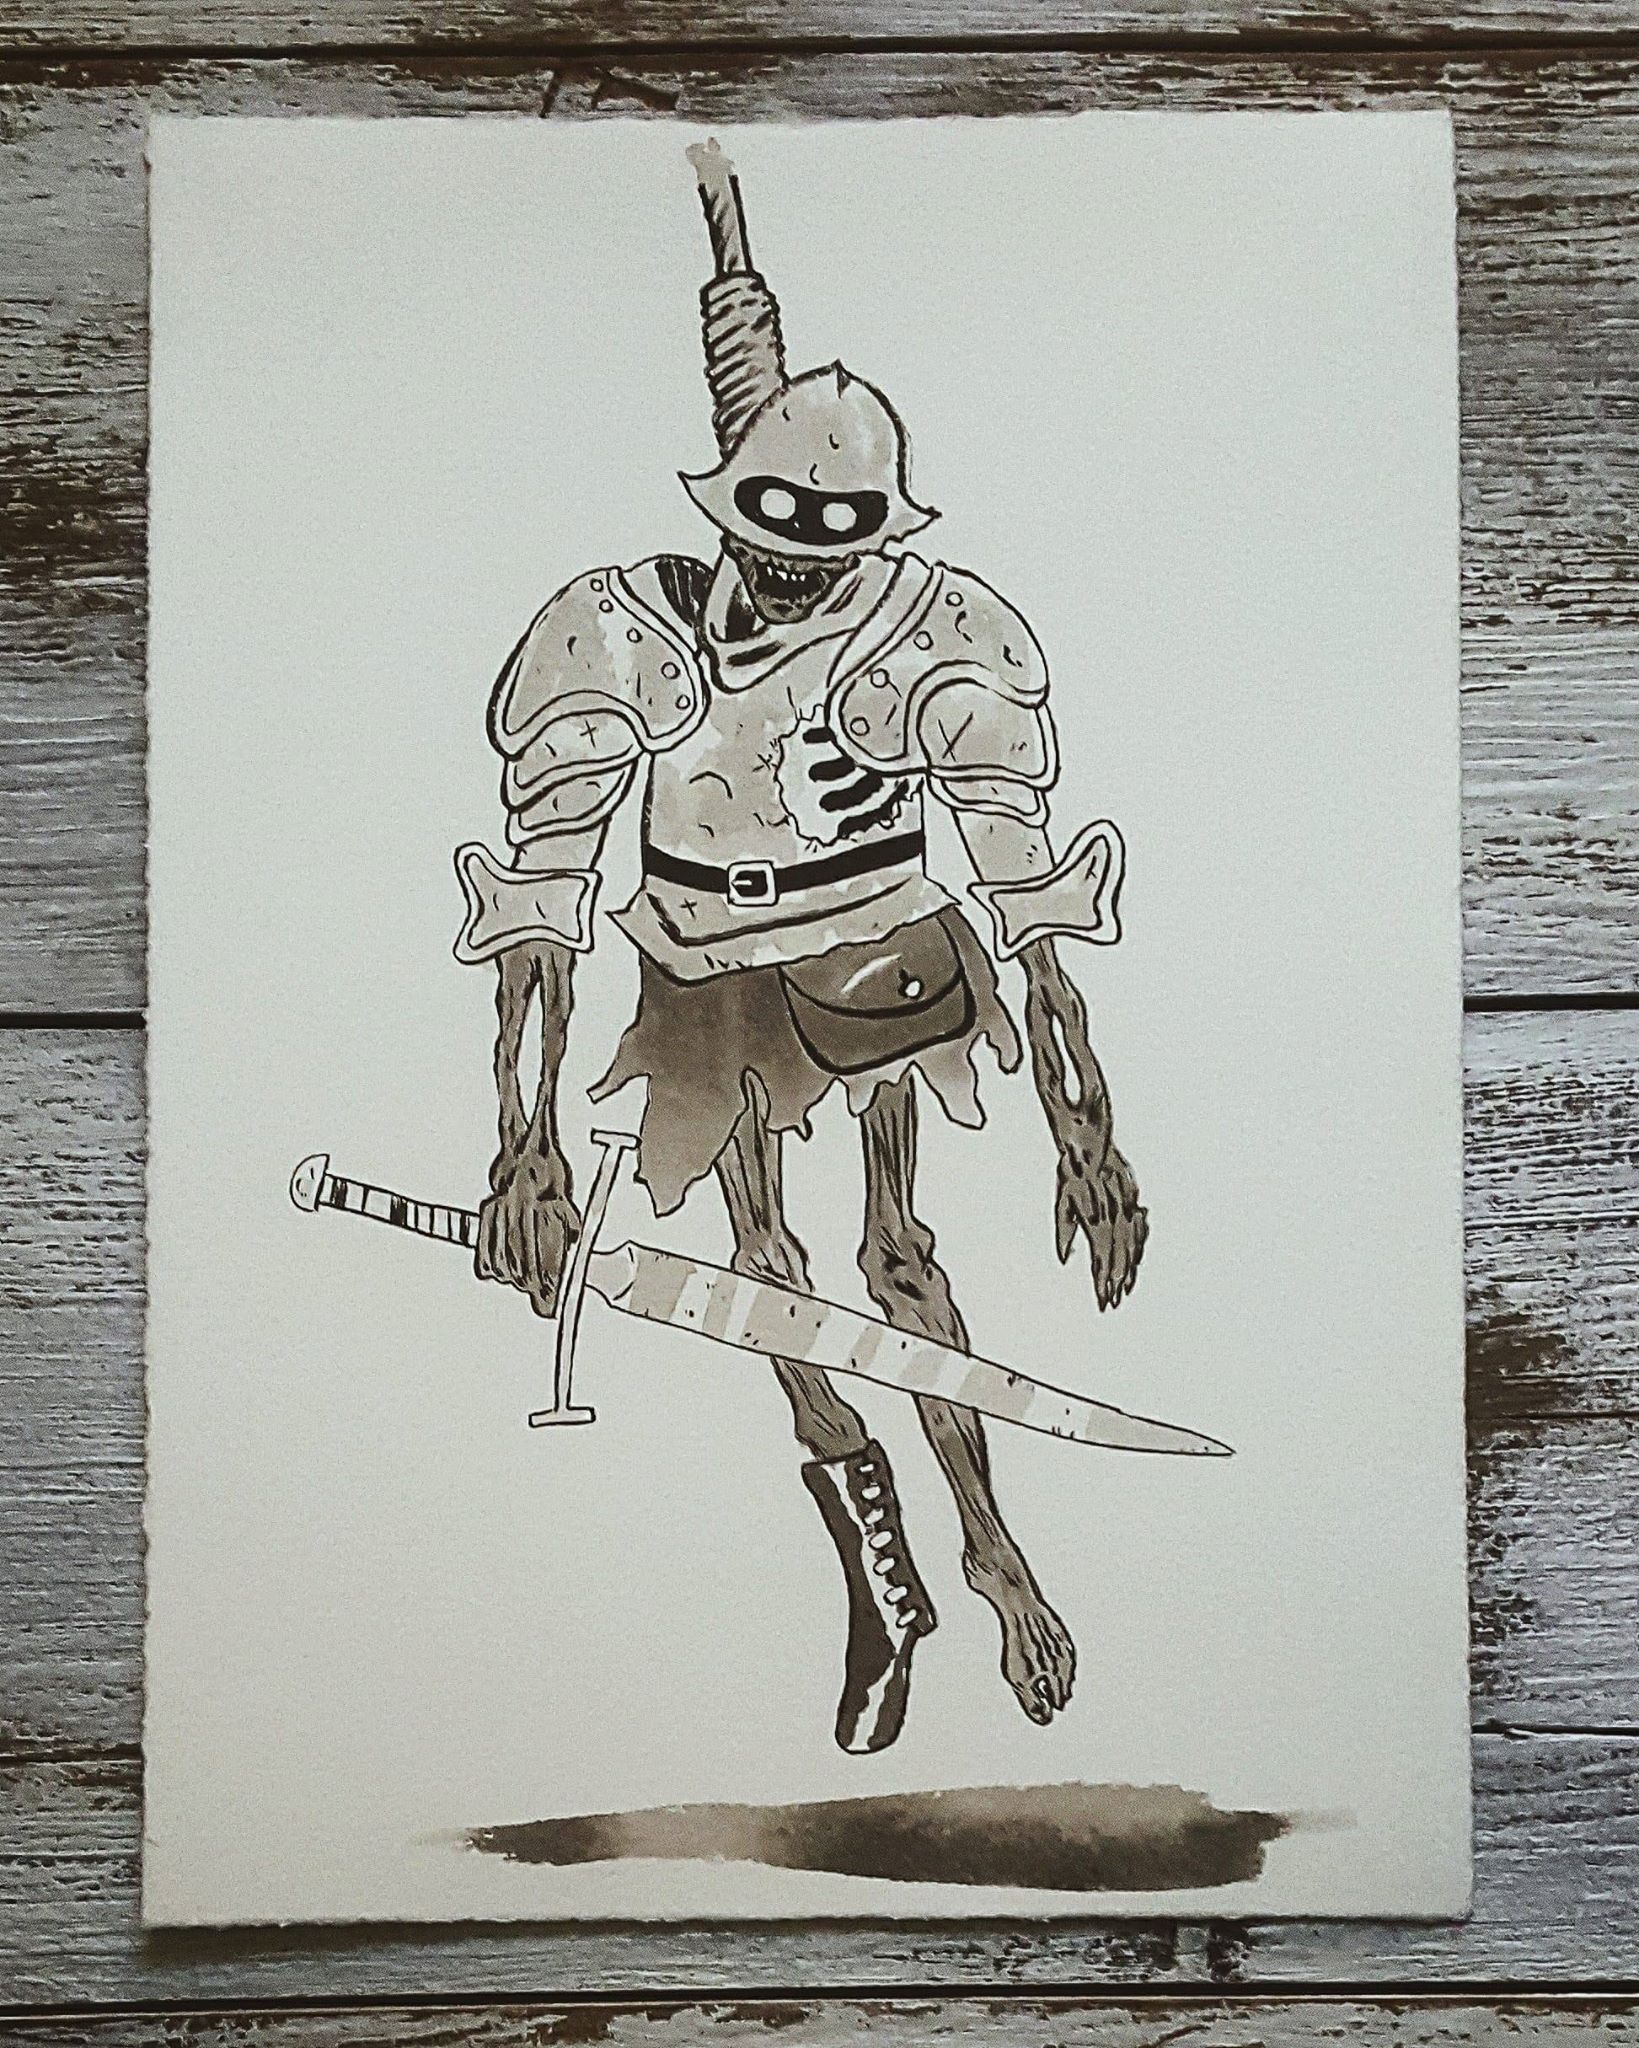 A Knight a Day No. 32, The Hanged Knight - Solomon tried to thwart a military coupe and protect his king. When he was defeated by the rebels, they hanged him from the highest tower in the castle. Now he haunts the halls, trying even in death to keep the king safe.